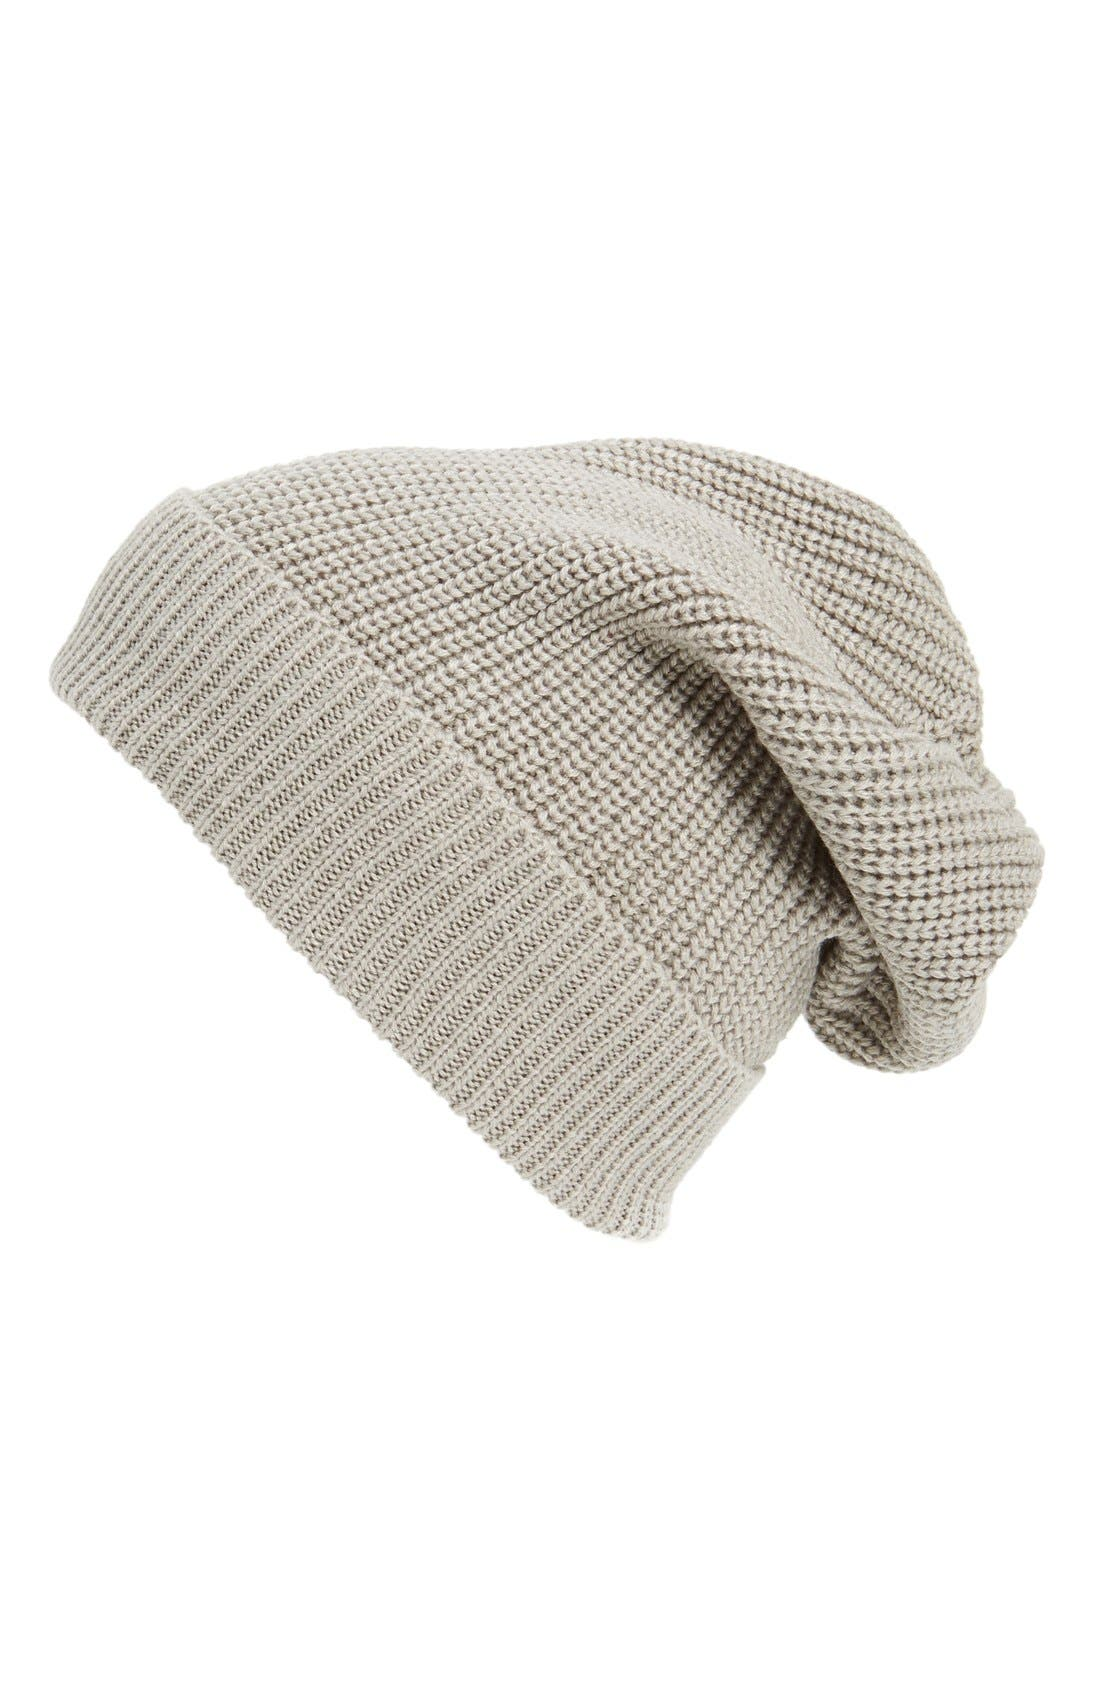 Main Image - Phase 3 'Stand Up' Basket Knit Slouchy Beanie